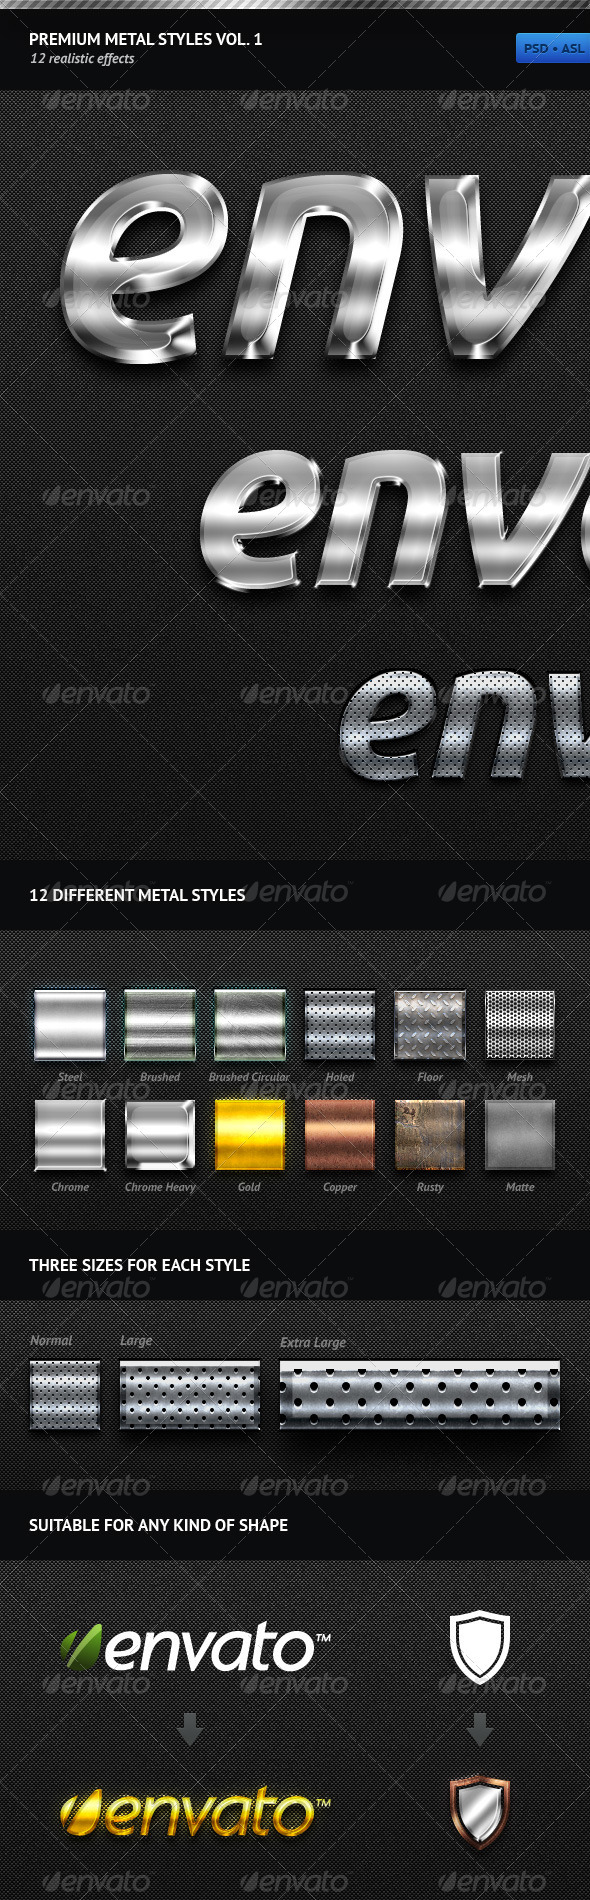 Premium Metal Styles Vol. 1 - Text Effects Styles